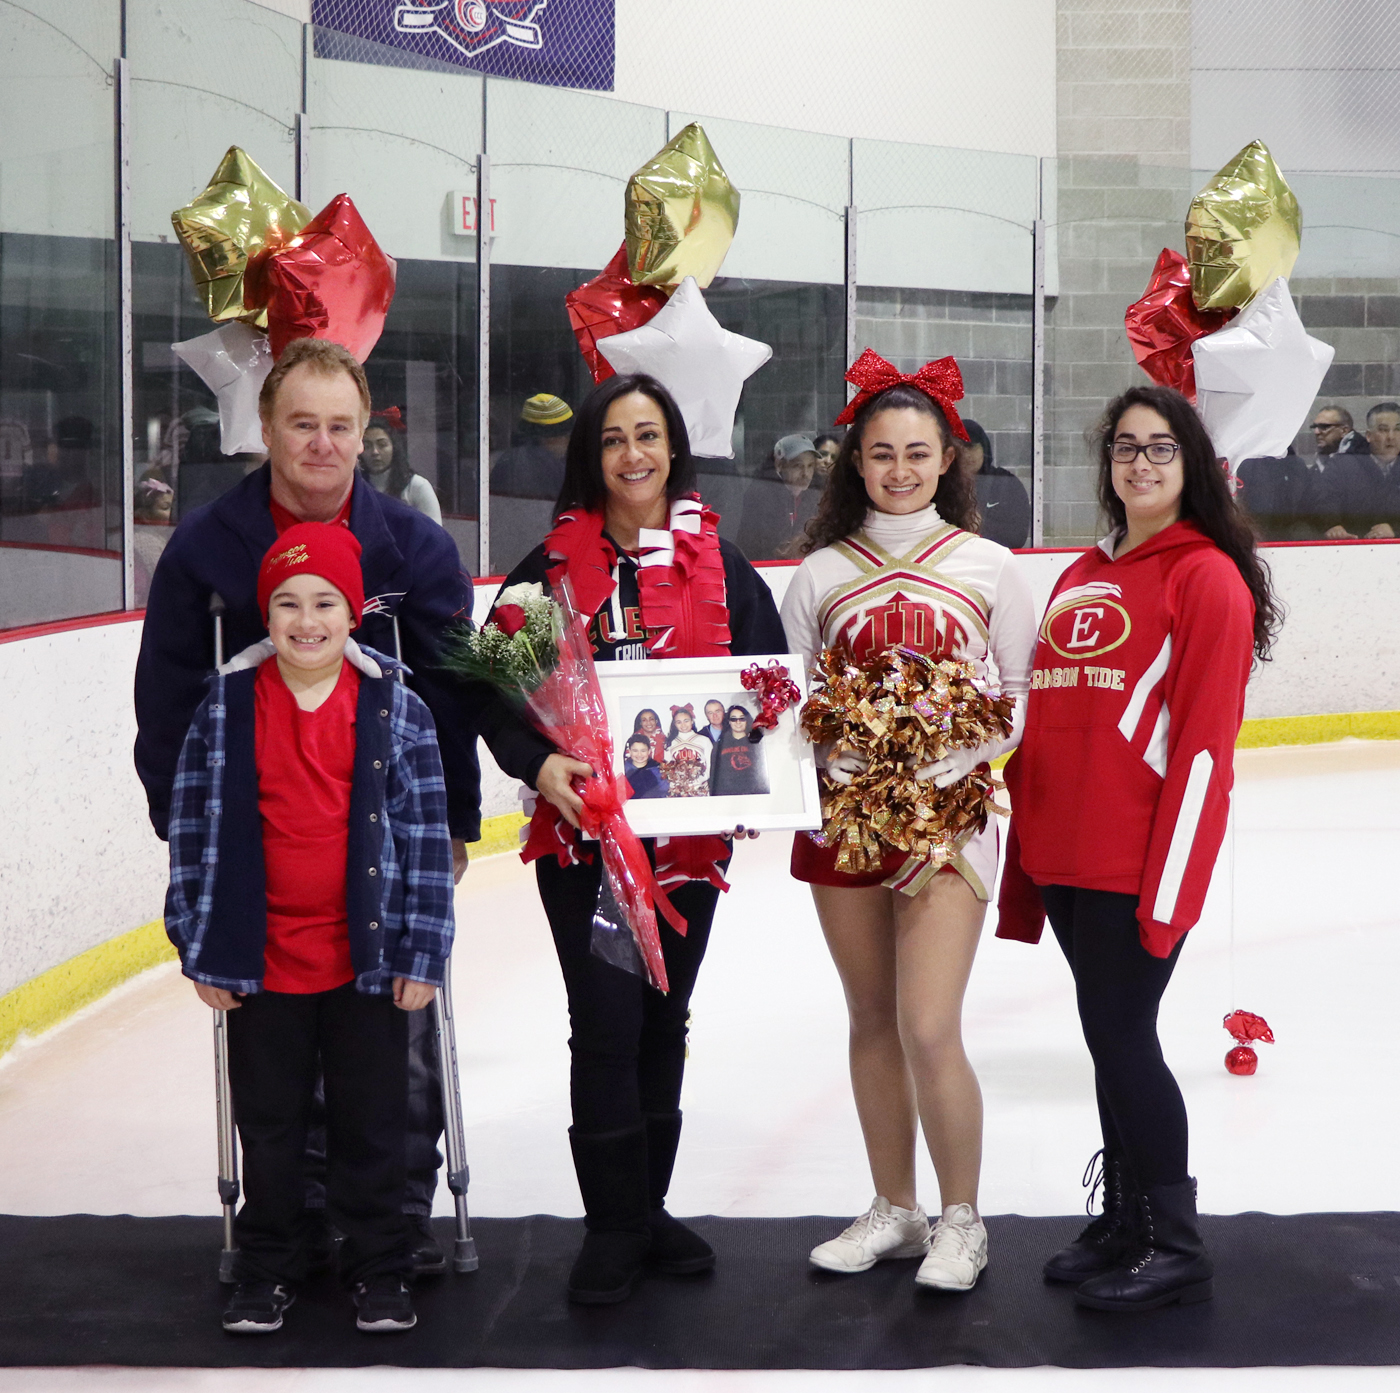 Myah Blauvelt with her parents, Larissa and Paul; sister, Isabella; and brother, Raymond